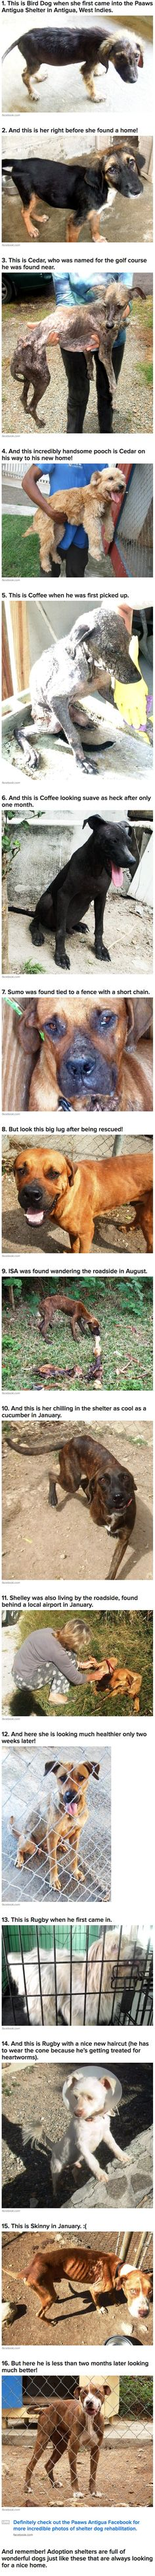 16 Incredible Transformation Photos Of Shelter Dogs »» http://www.facebook.com/paaws.antigua  REASON #976476883577 I only believe in rescuing your next family member